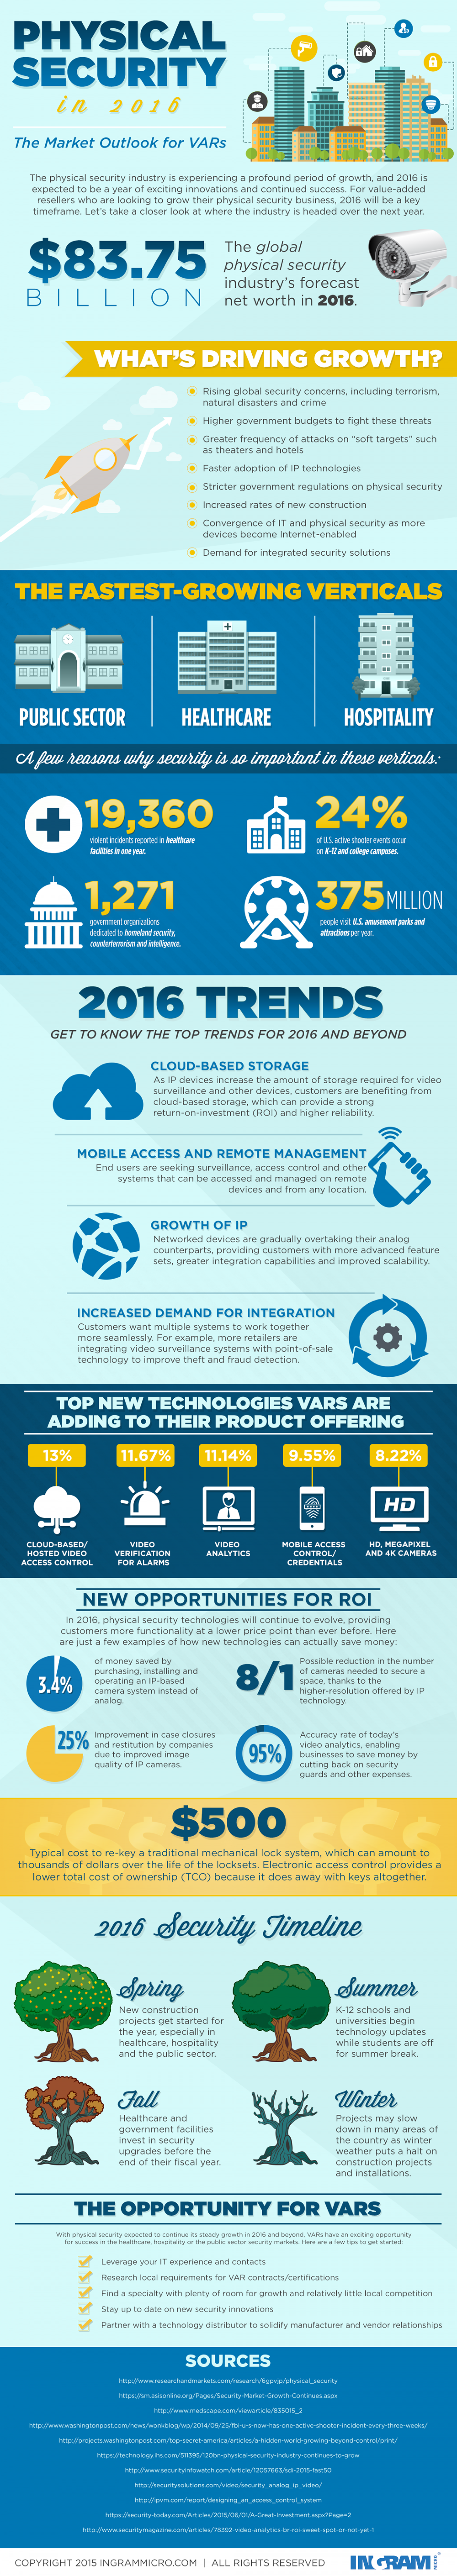 Physical Security In 2016  Infographic